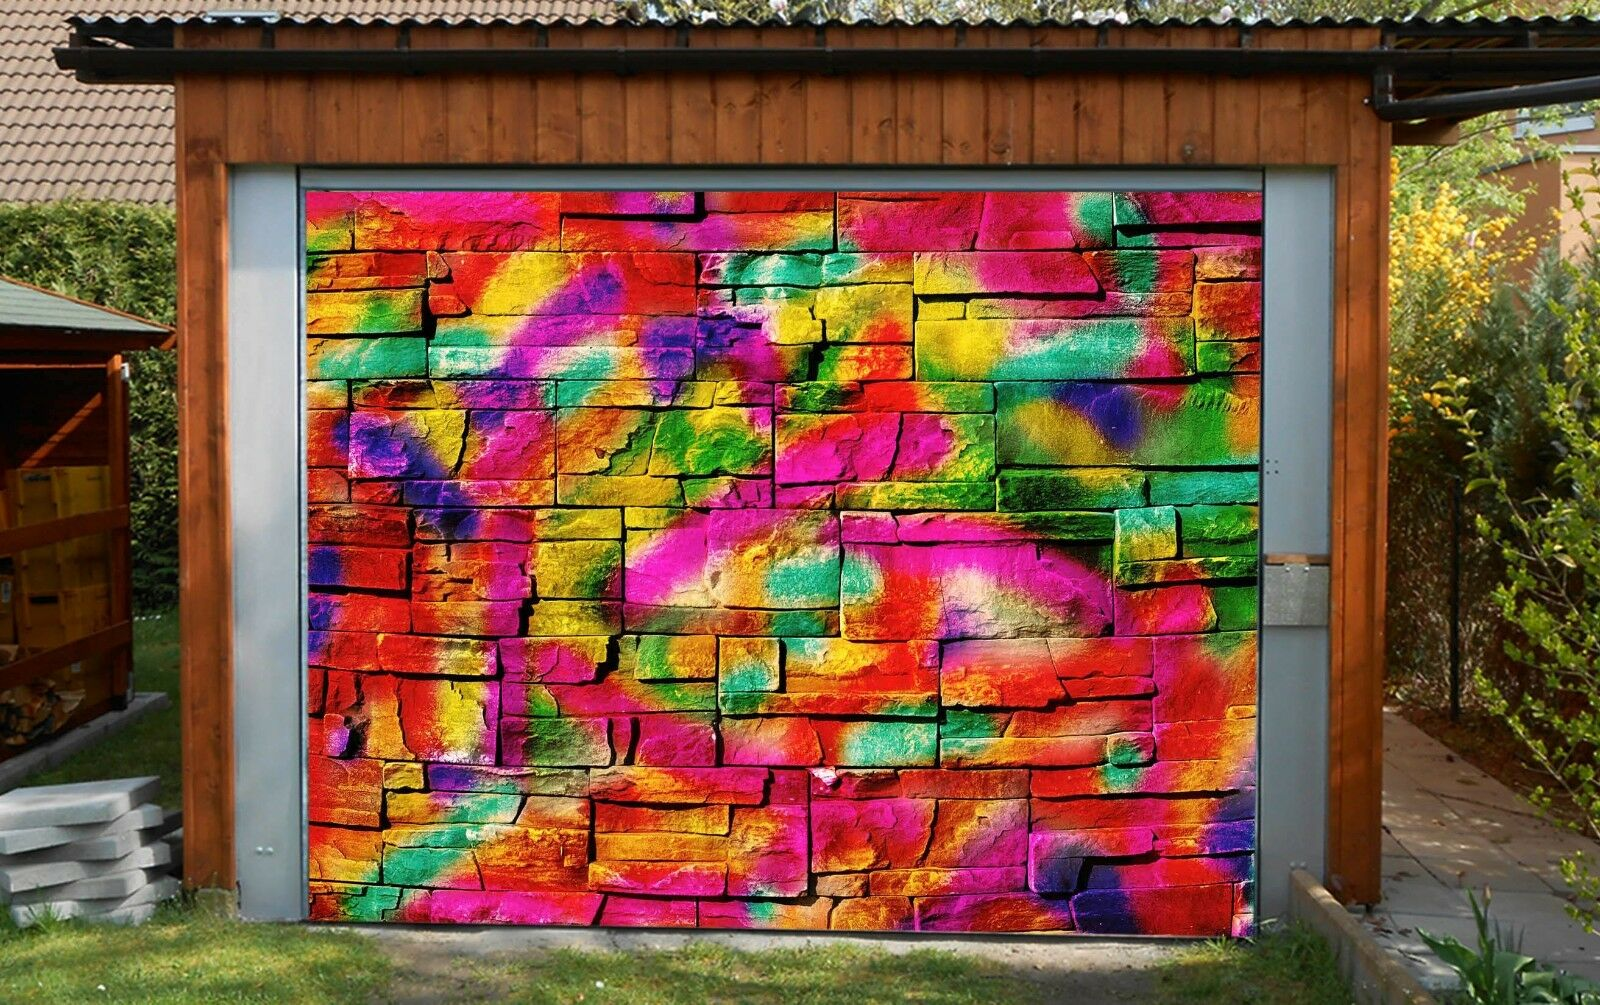 3D Graffiti 776 Garage Door Murals Wall Print Decal Wall Deco AJ WALLPAPER UK